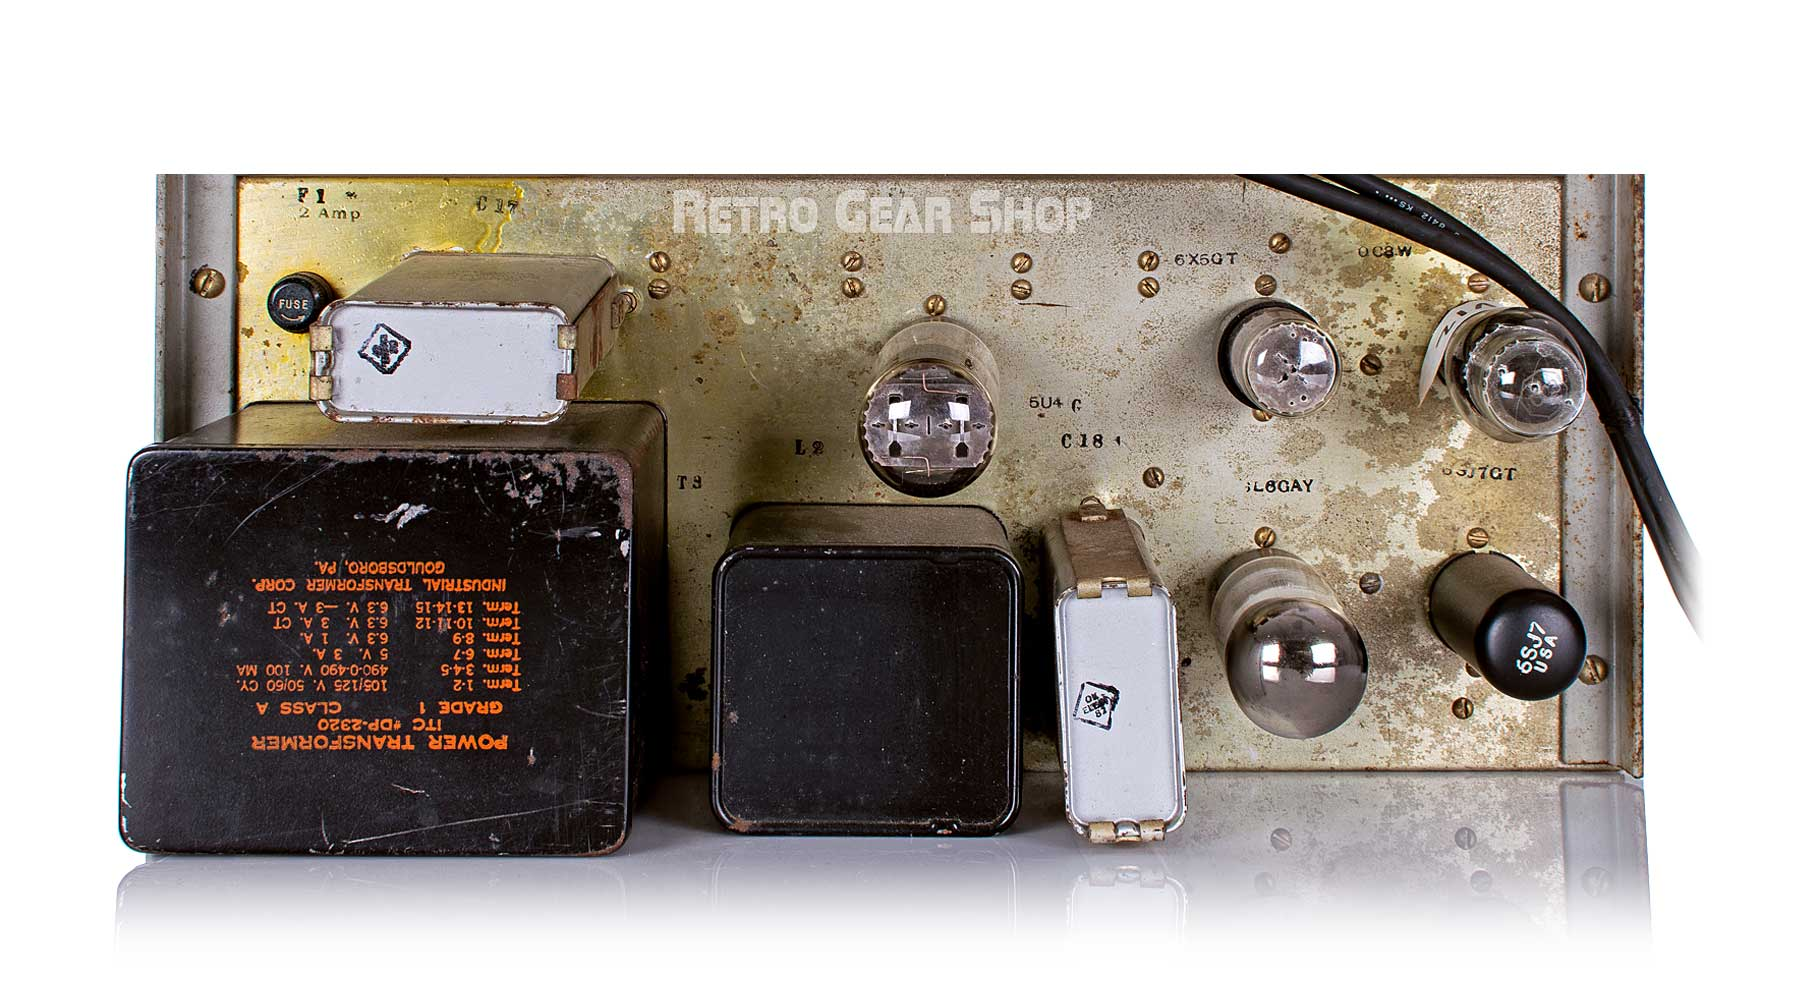 Signal Corps AF Amplifier AM-186A/FR Bottom Rear